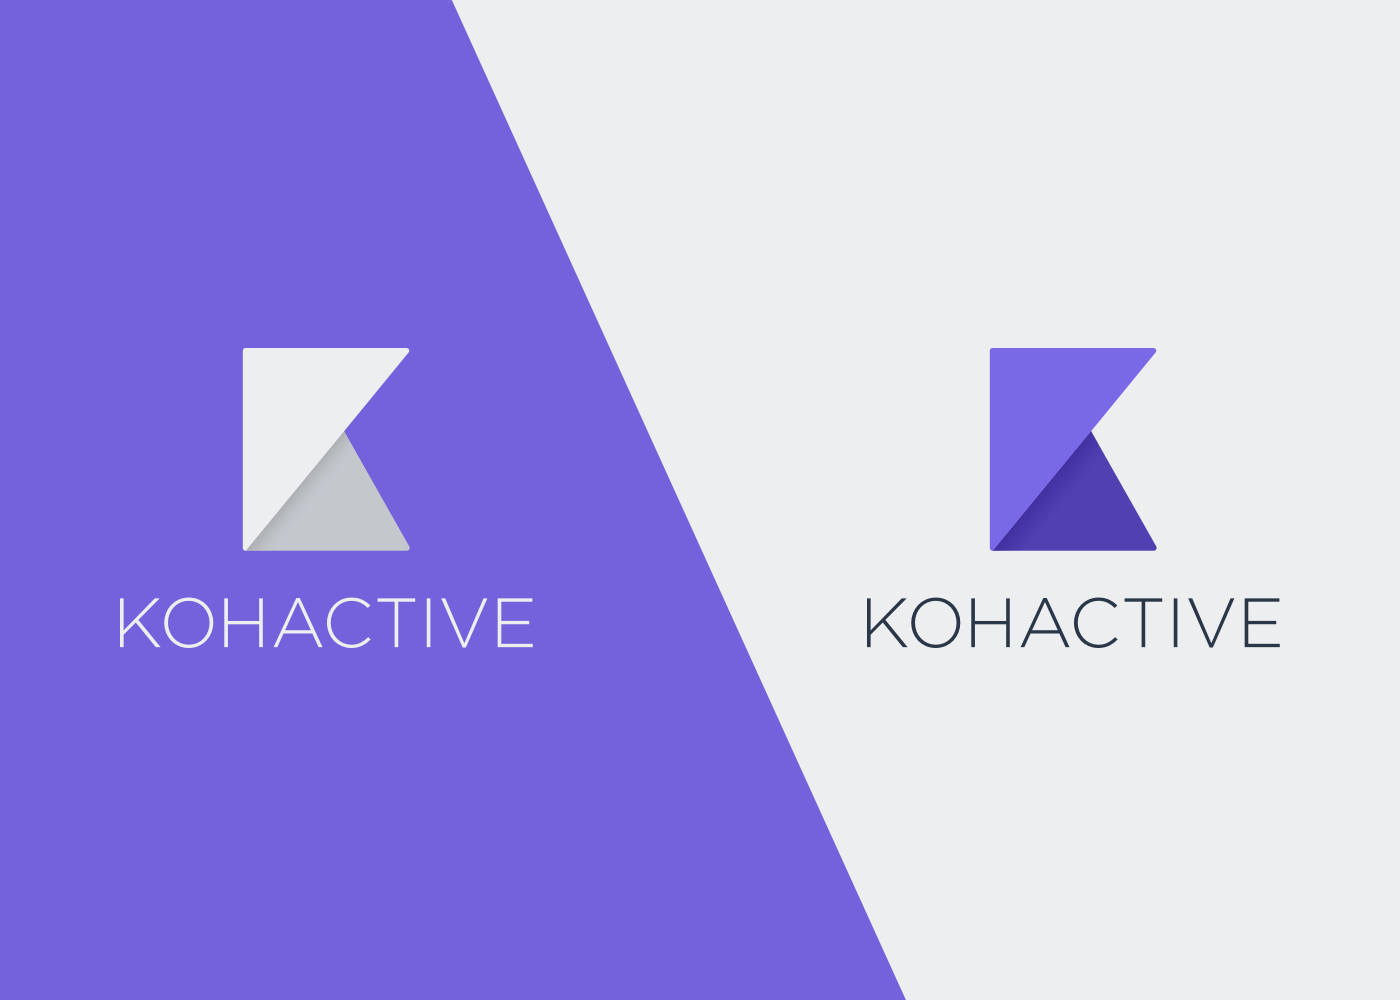 Kohactive Logo Color Variations